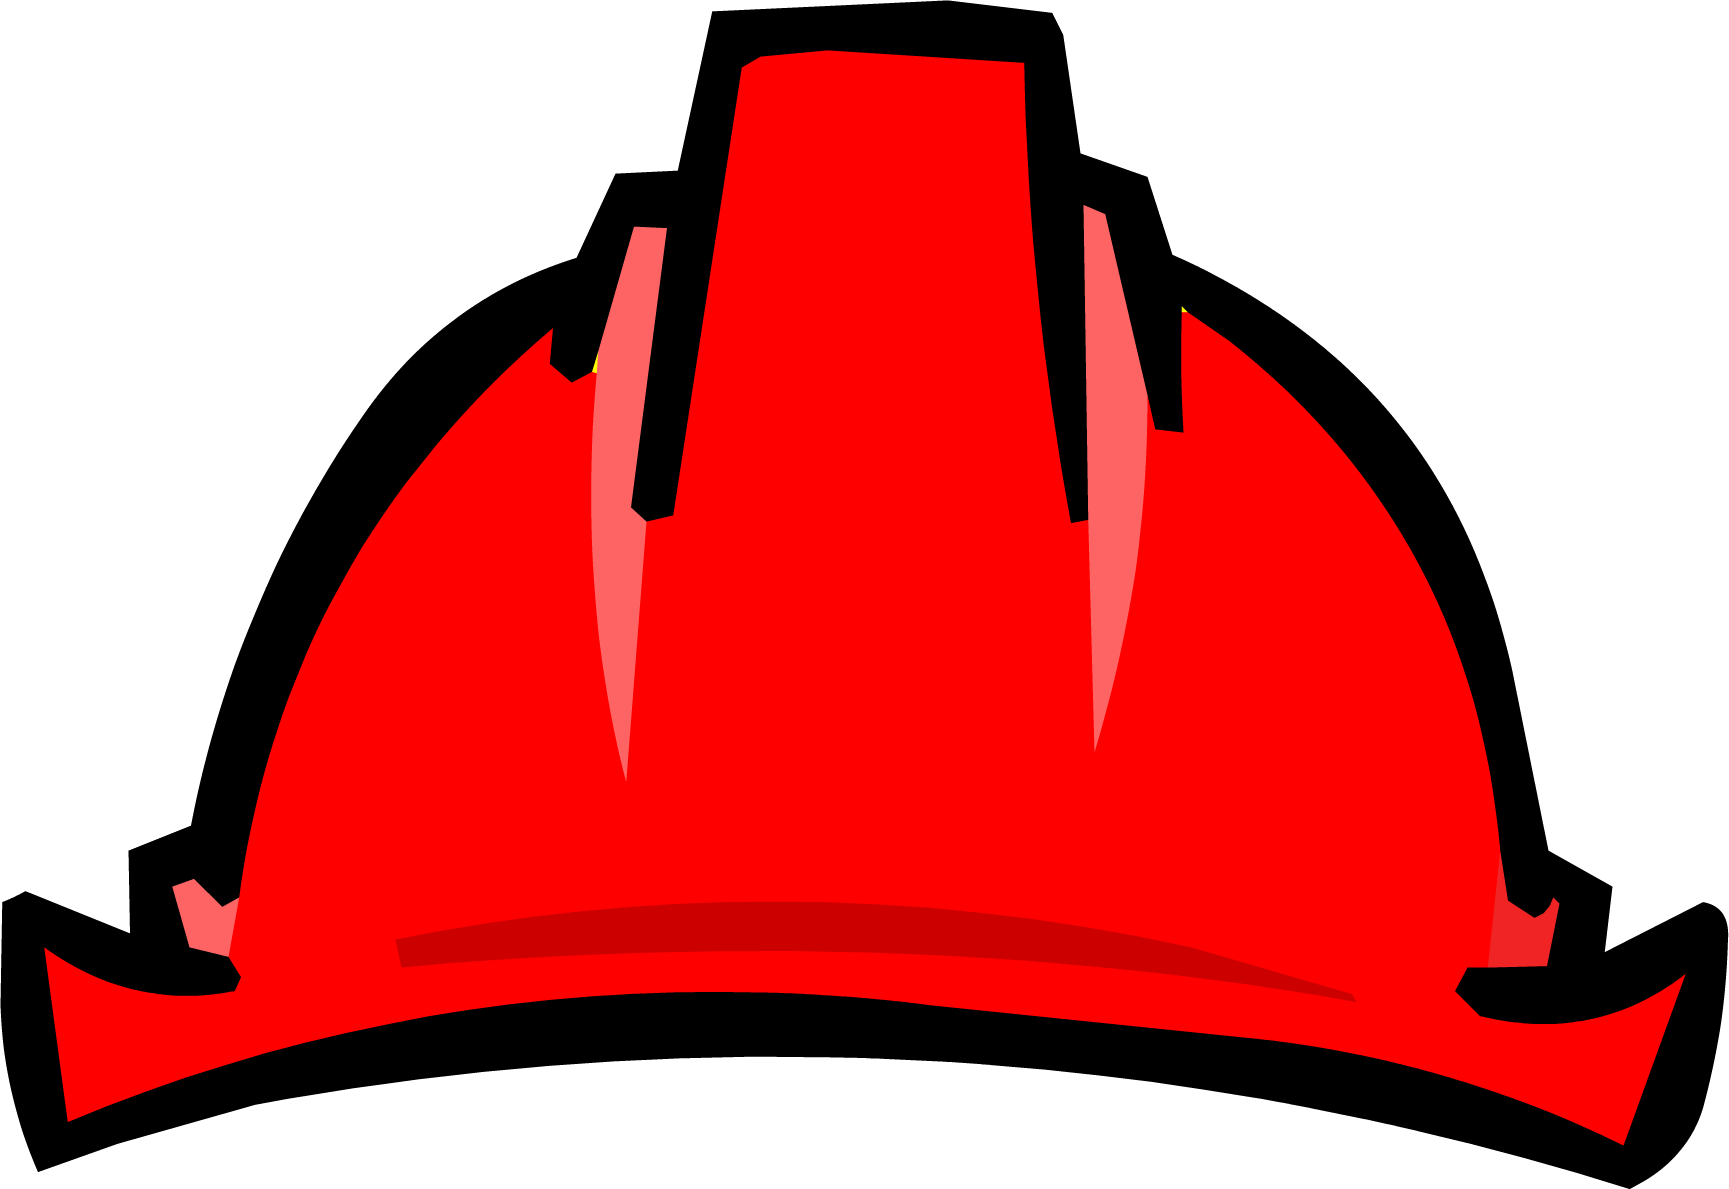 Clipart baseball cap you can add logo to banner download Red Hard Hat | Club Penguin Rewritten Wiki | FANDOM powered by Wikia banner download